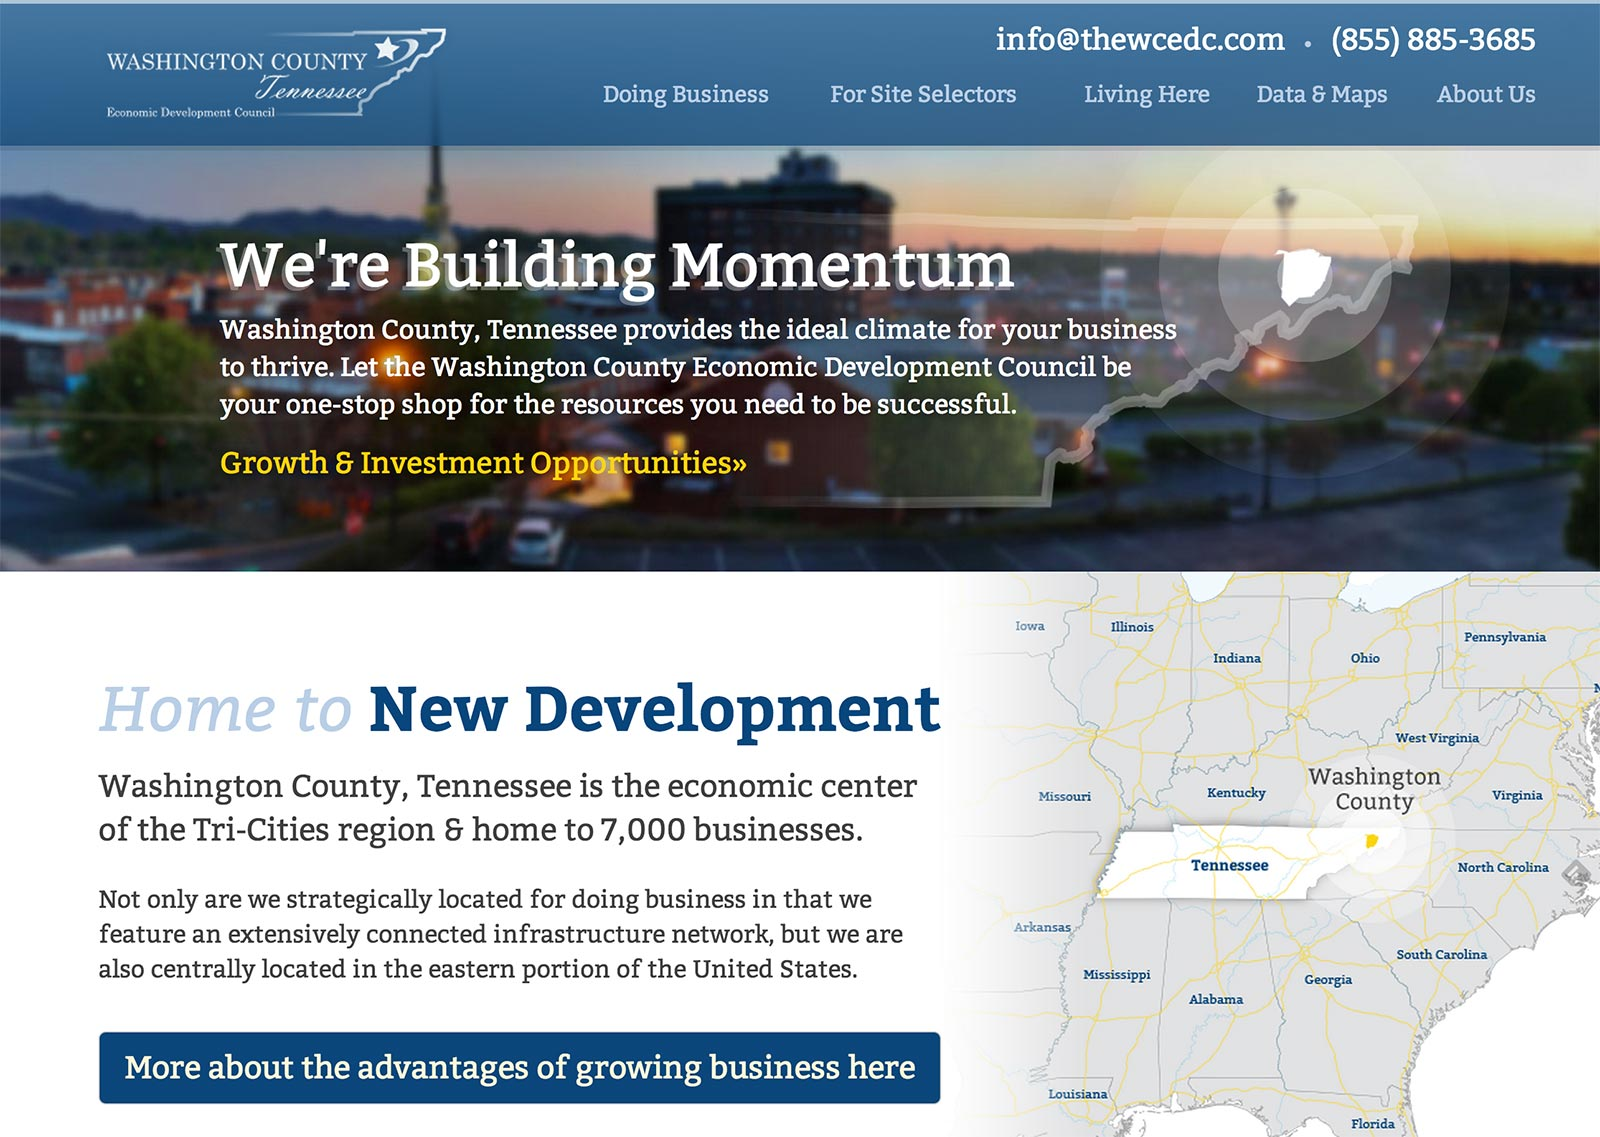 Washington County Economic Development Council Website Launches